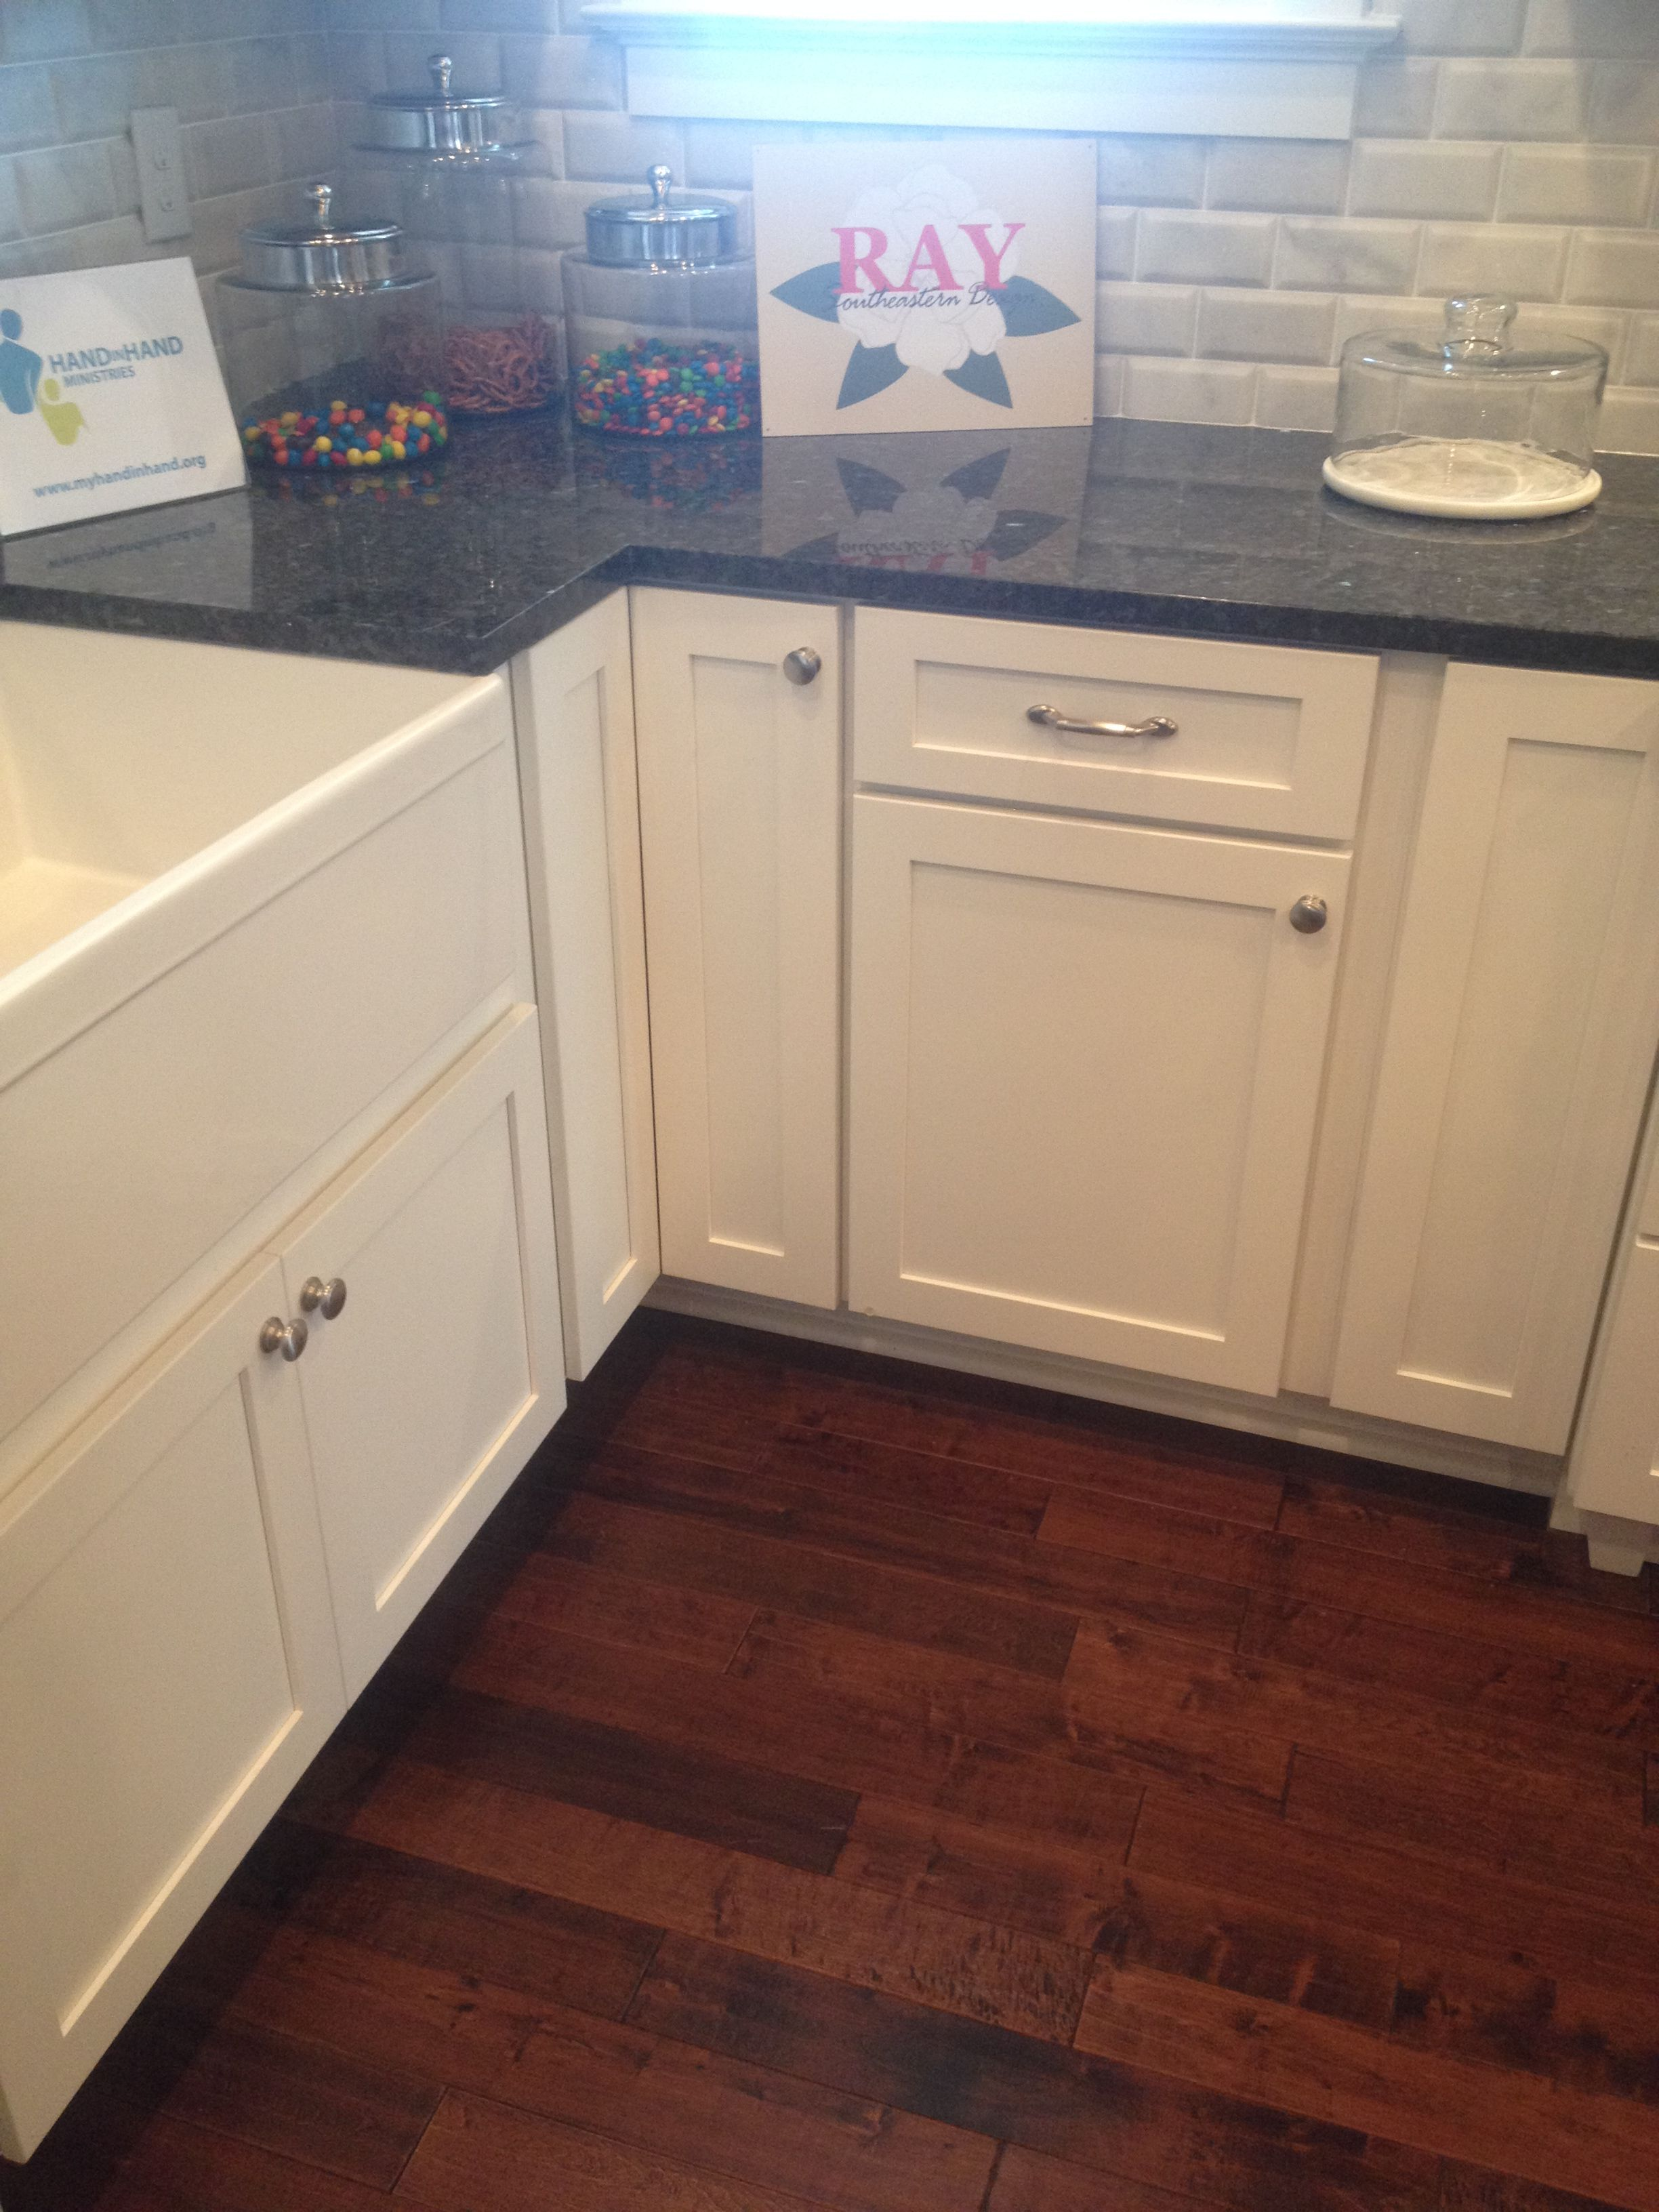 Blue Countertops White Cabinets Blue Pearl Granite Counter With White Farmhouse Sink And